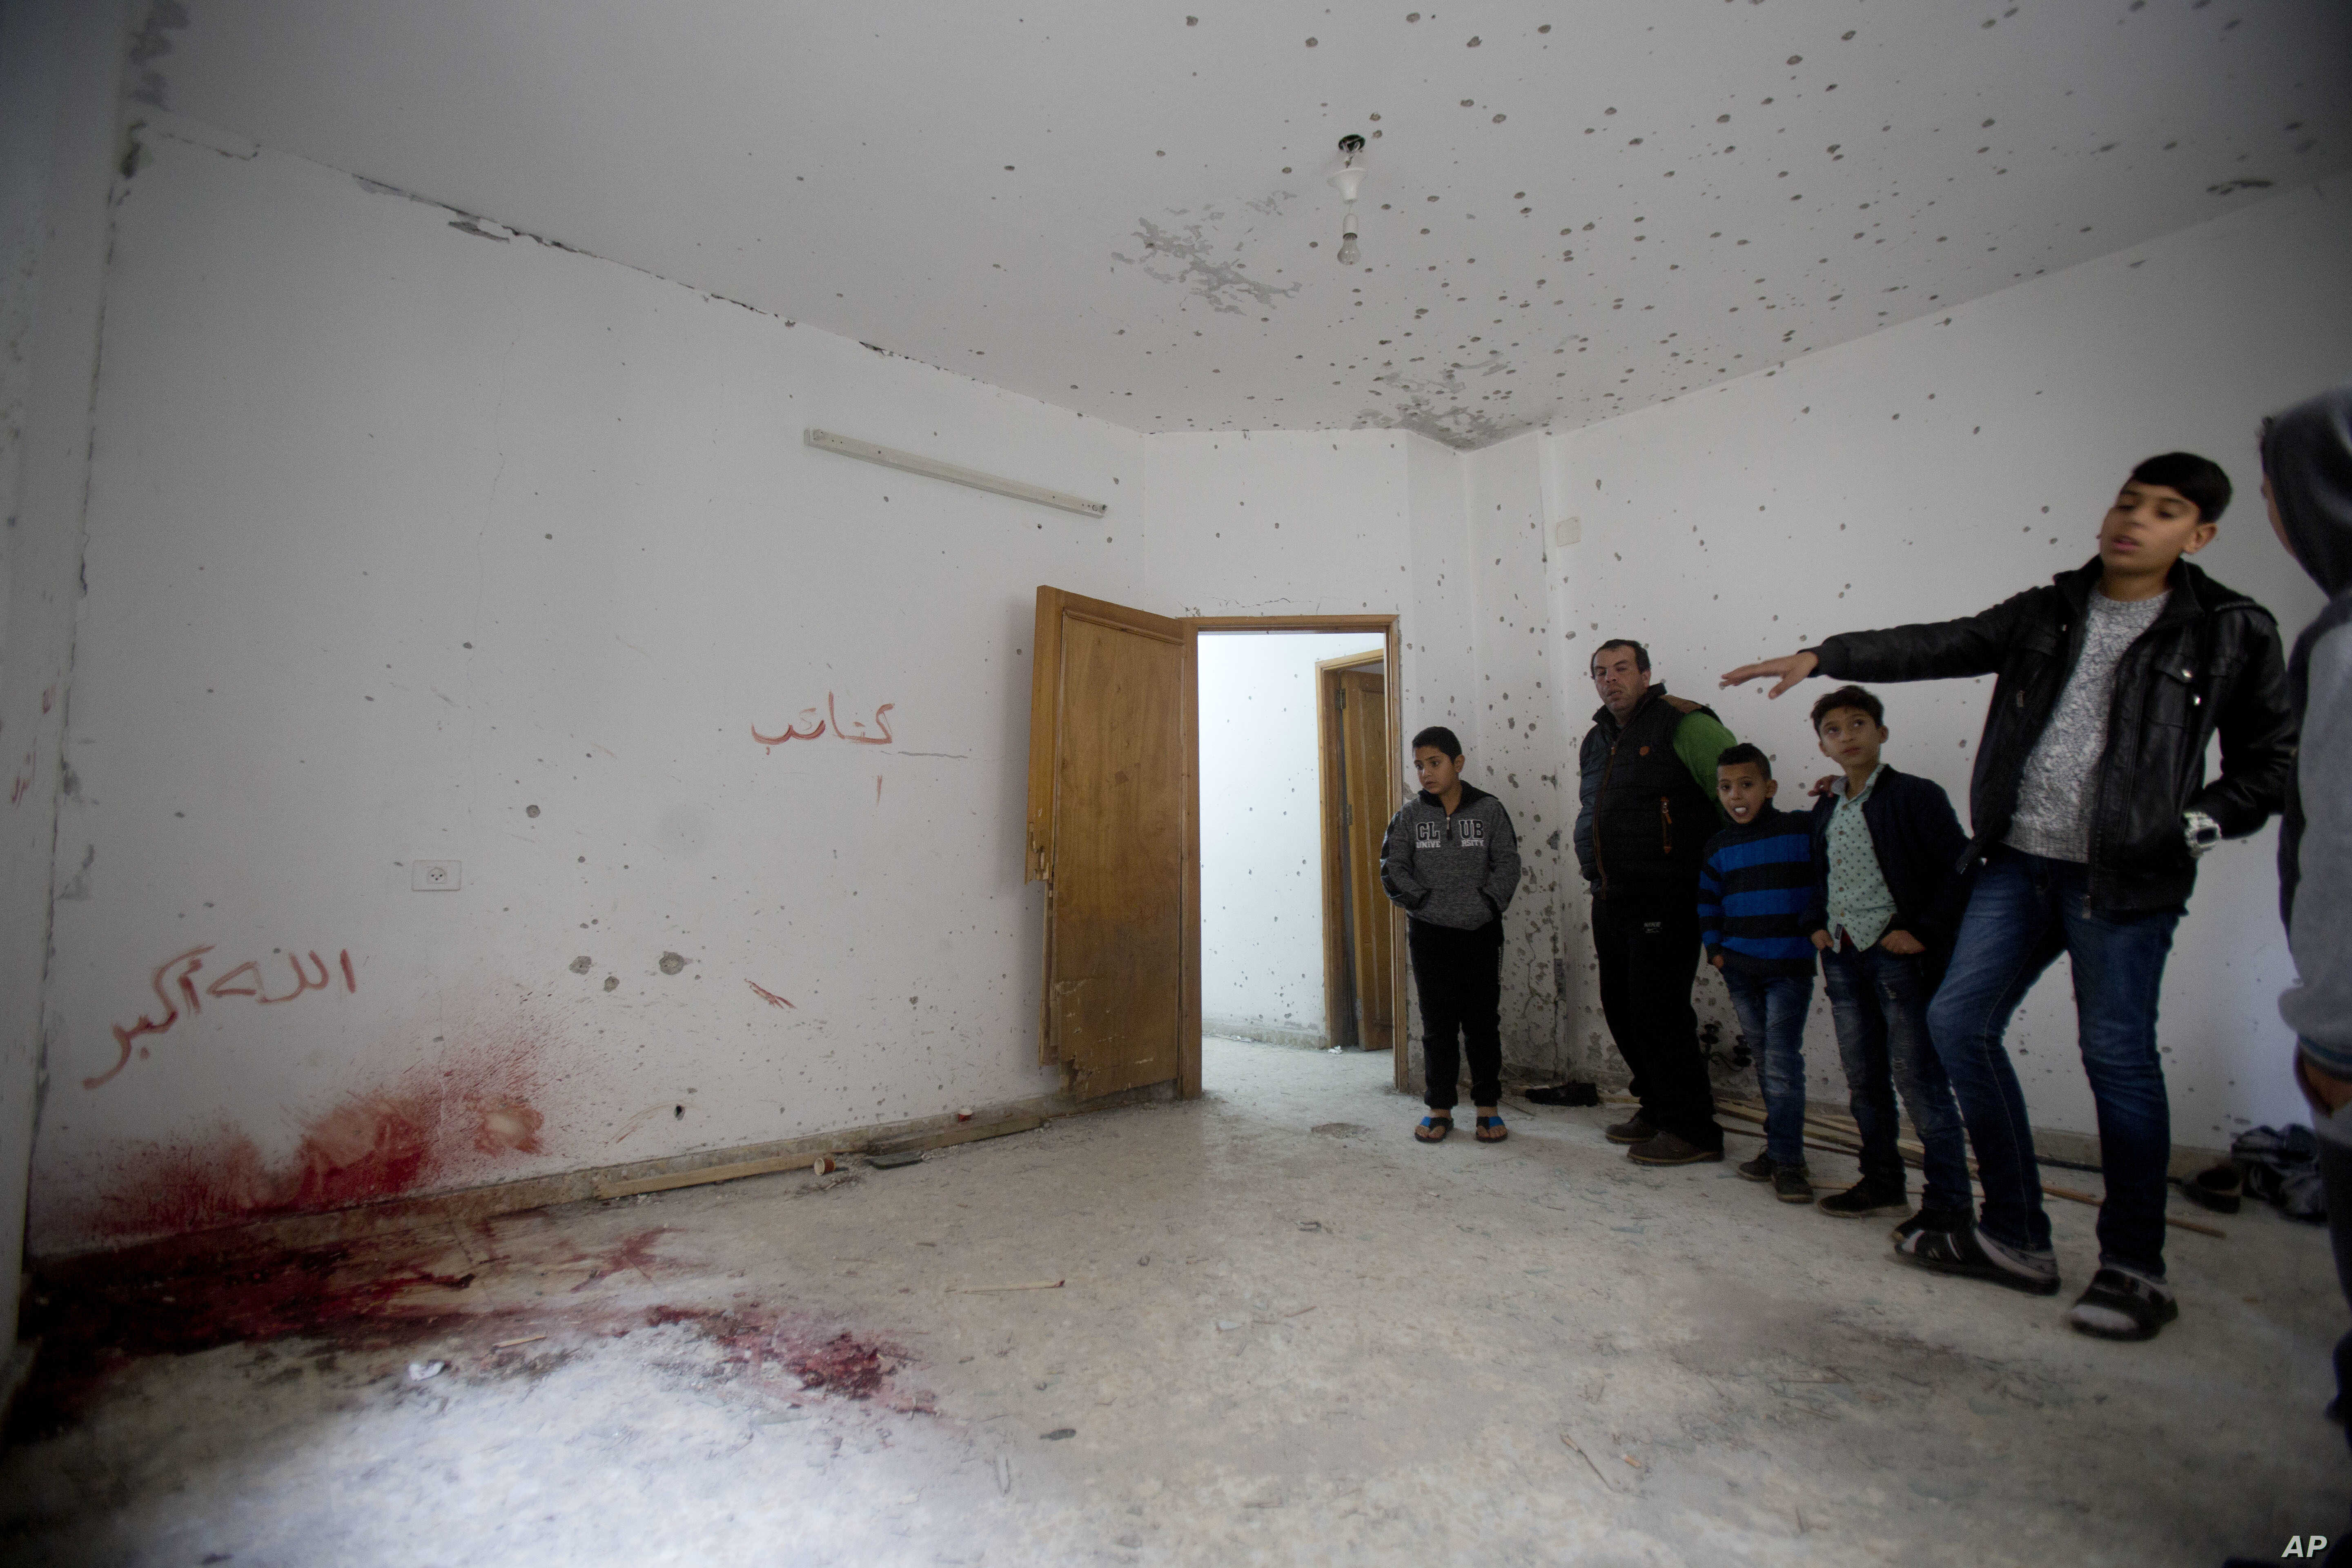 Palestinians look at a damage after an Israeli raid killed Ashraf Naalweh during an arrest raid in the Asker refugee camp near the West Bank city of Nablus, Thursday, Dec. 13, 2018.